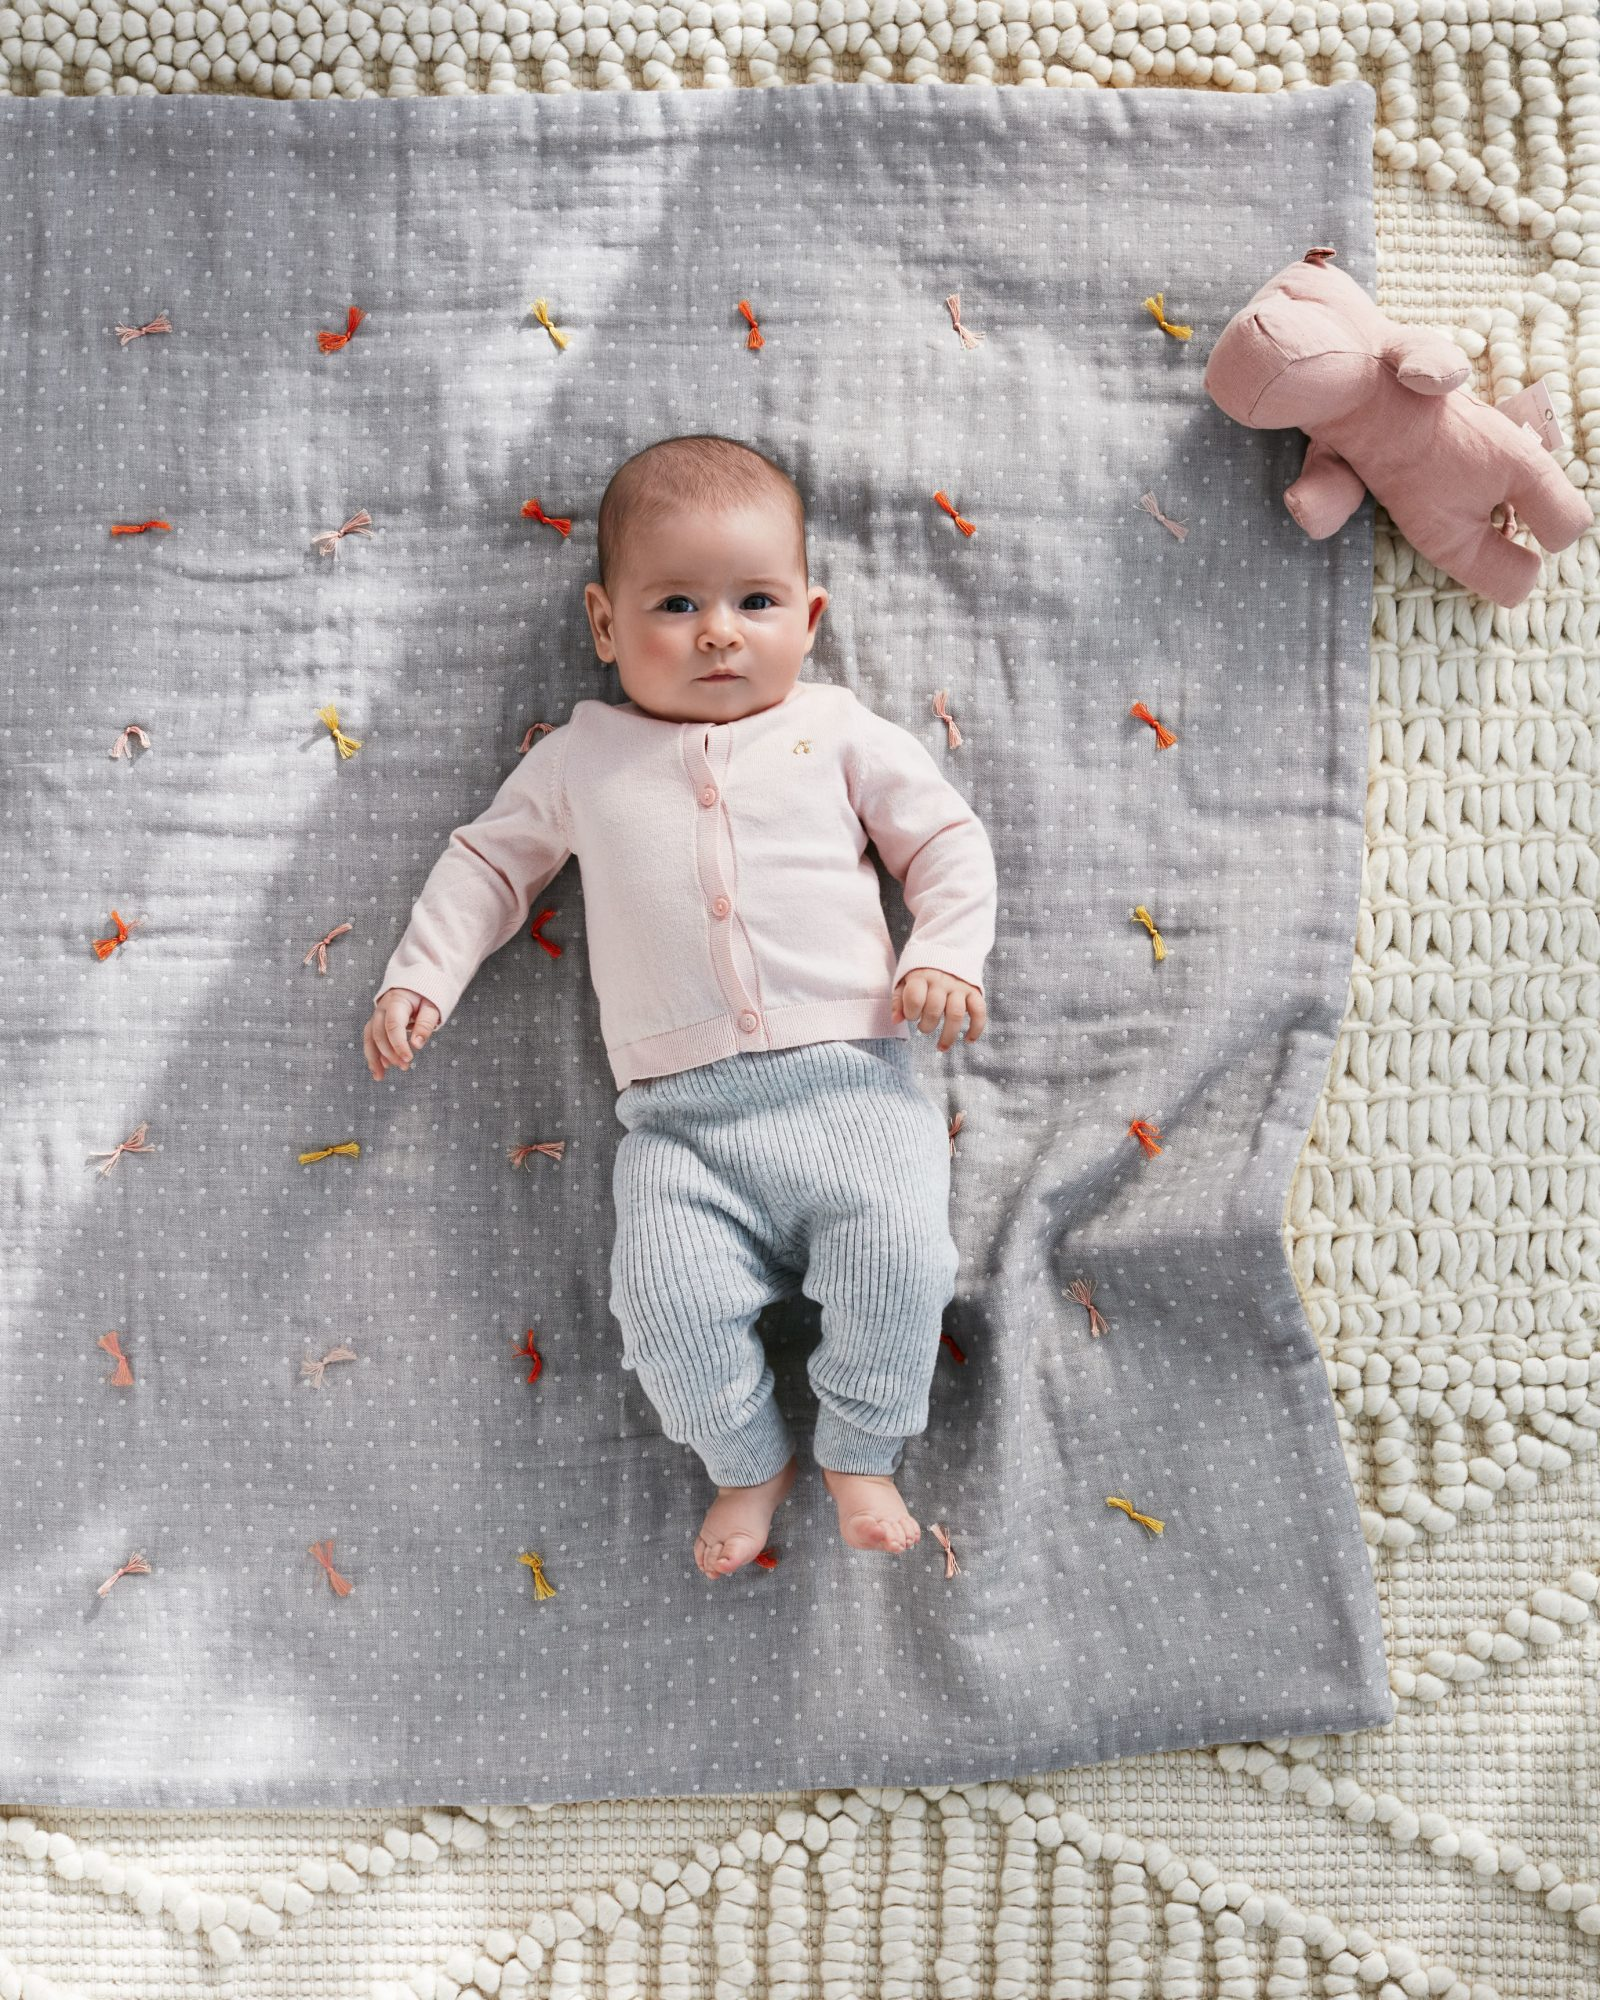 baby on a quilt with knots